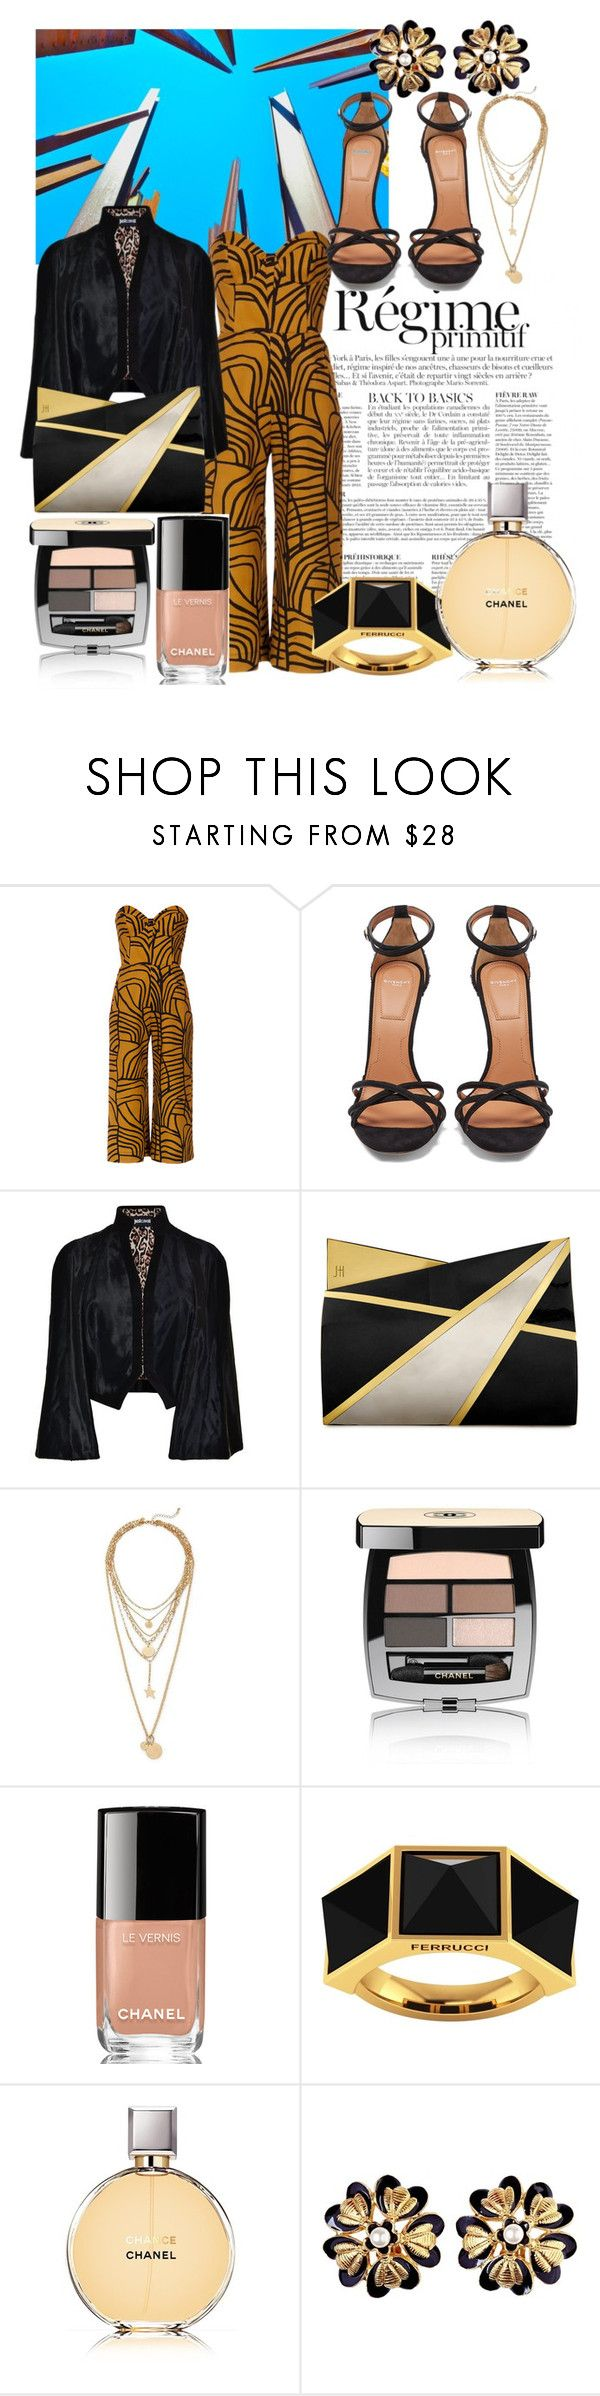 """Jumpsuit 1."" by unaqualunque ❤ liked on Polyvore featuring Anja, Andrea Marques, Givenchy, Just Cavalli, Jill Haber, Rebecca Minkoff, Chanel and Ferrucci"